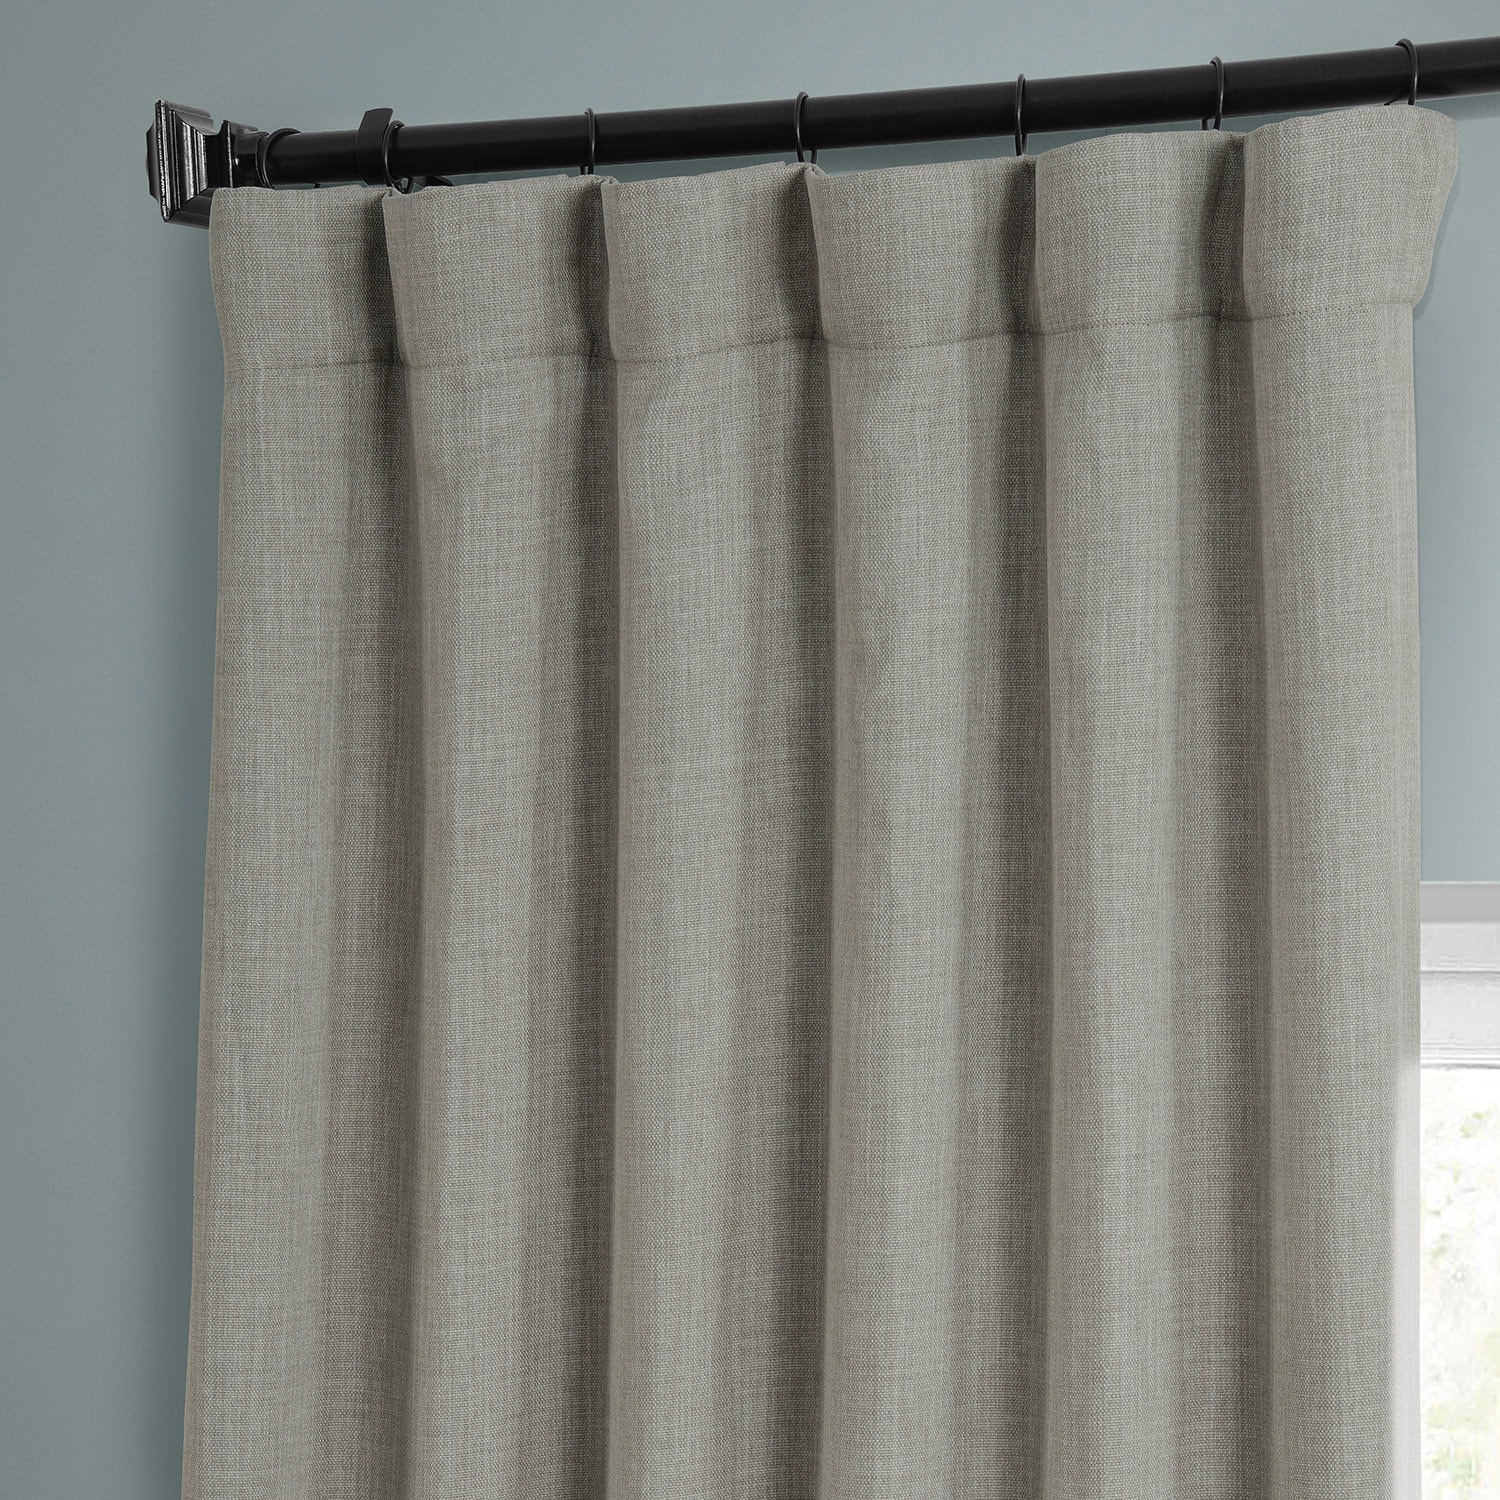 Oatmeal Faux Linen Blackout Curtain